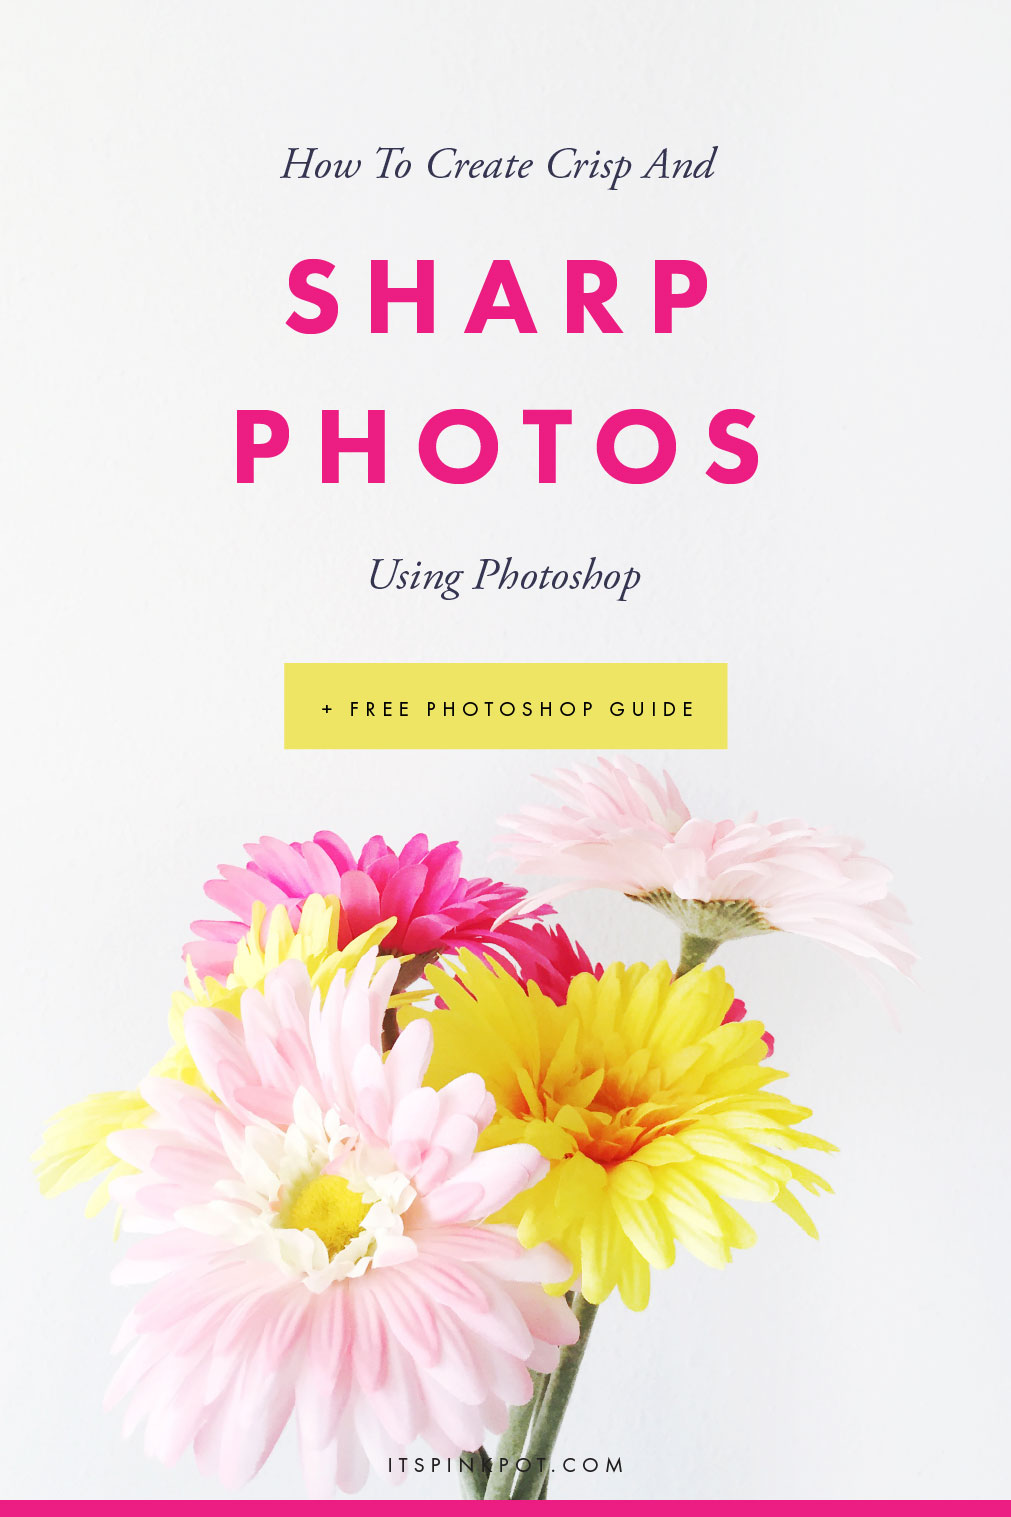 It takes less than a minute to make your photos crisp and clear using photoshop! Here is the complete tutorial in 3 easy steps. + A free photoshop cheatsheet too >>